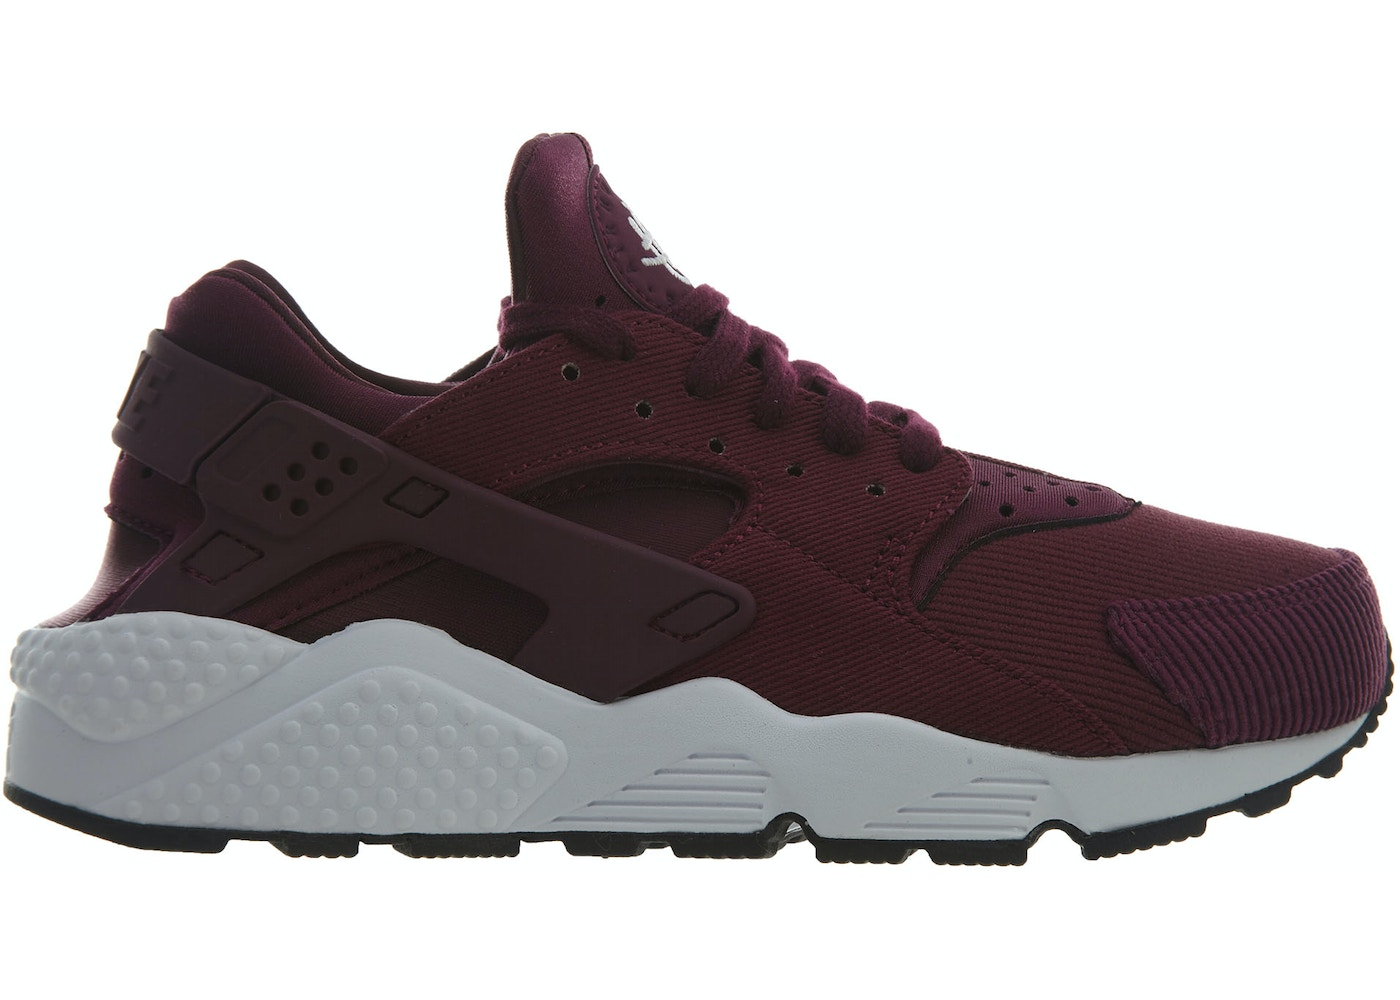 16c46b021bf9d Air Huarache Run Se Bordeaux Bordeaux-Black-White (W) - 859429-601